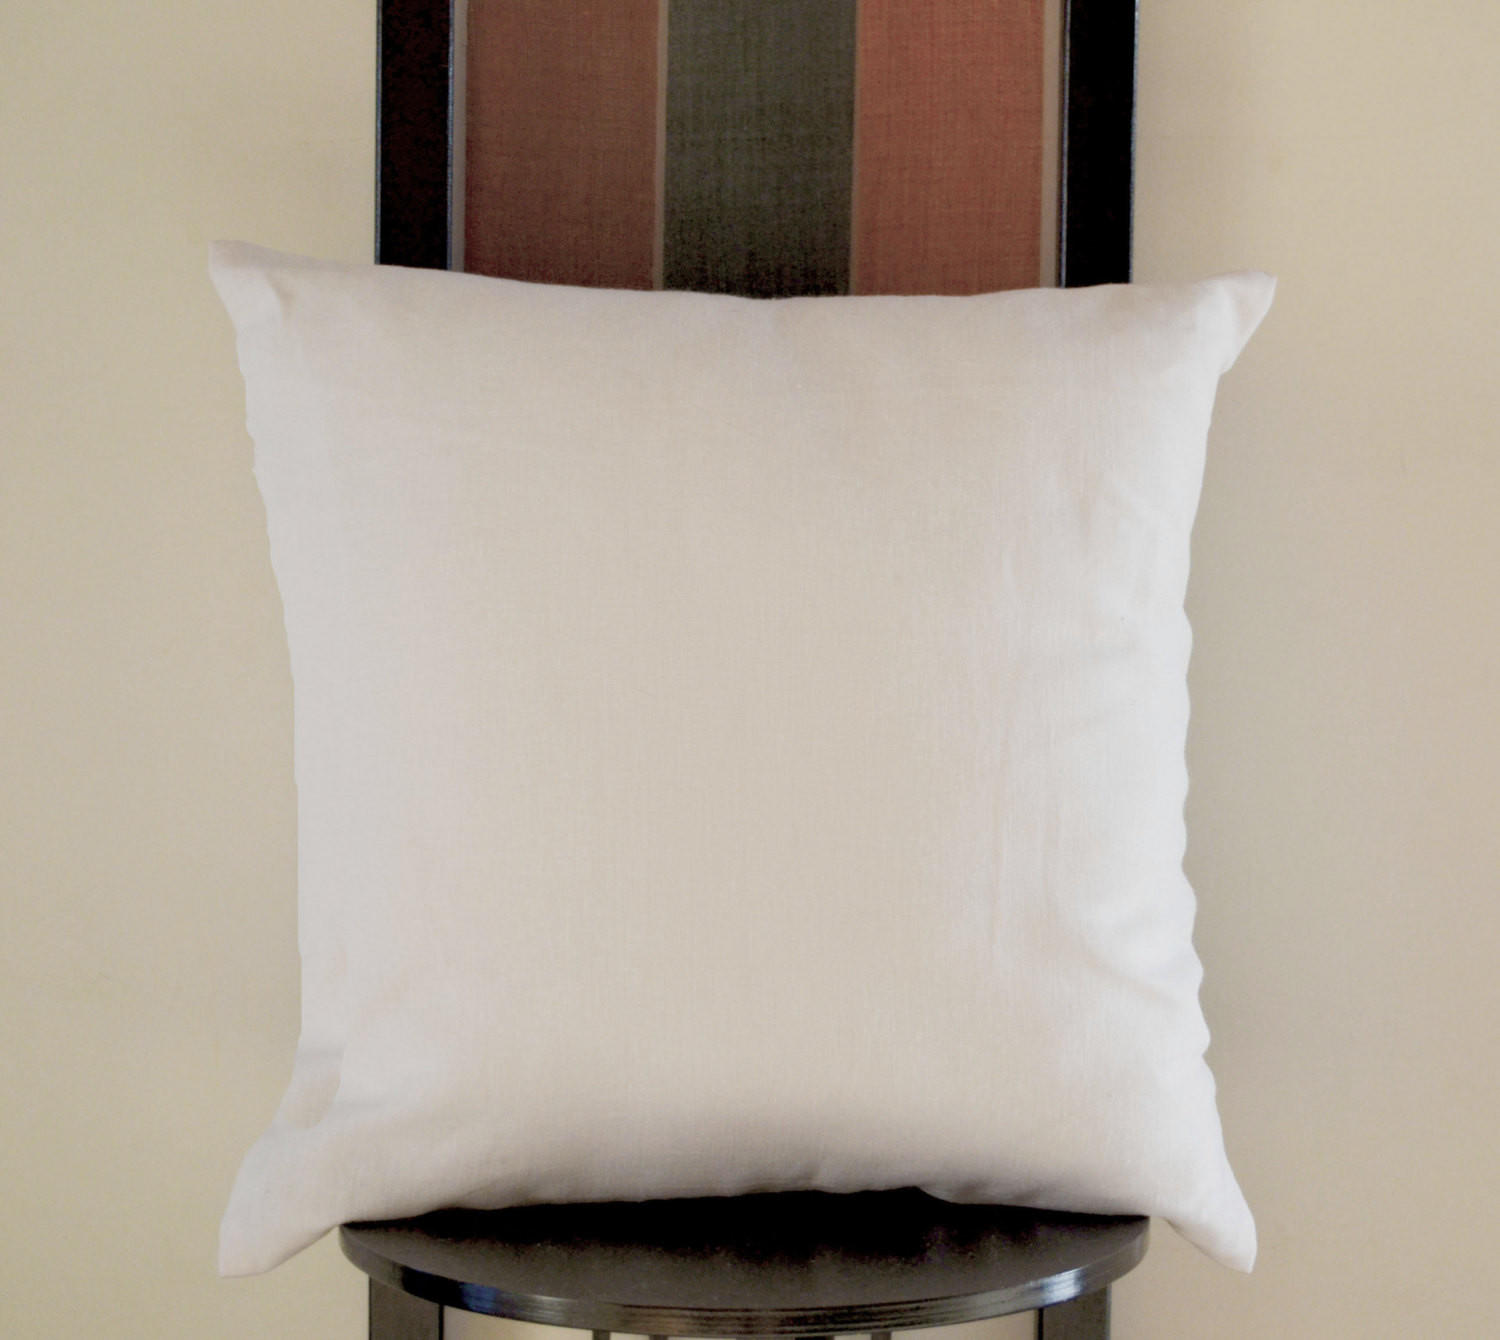 Throw Pillows White Decorative Pillow From Casaamore